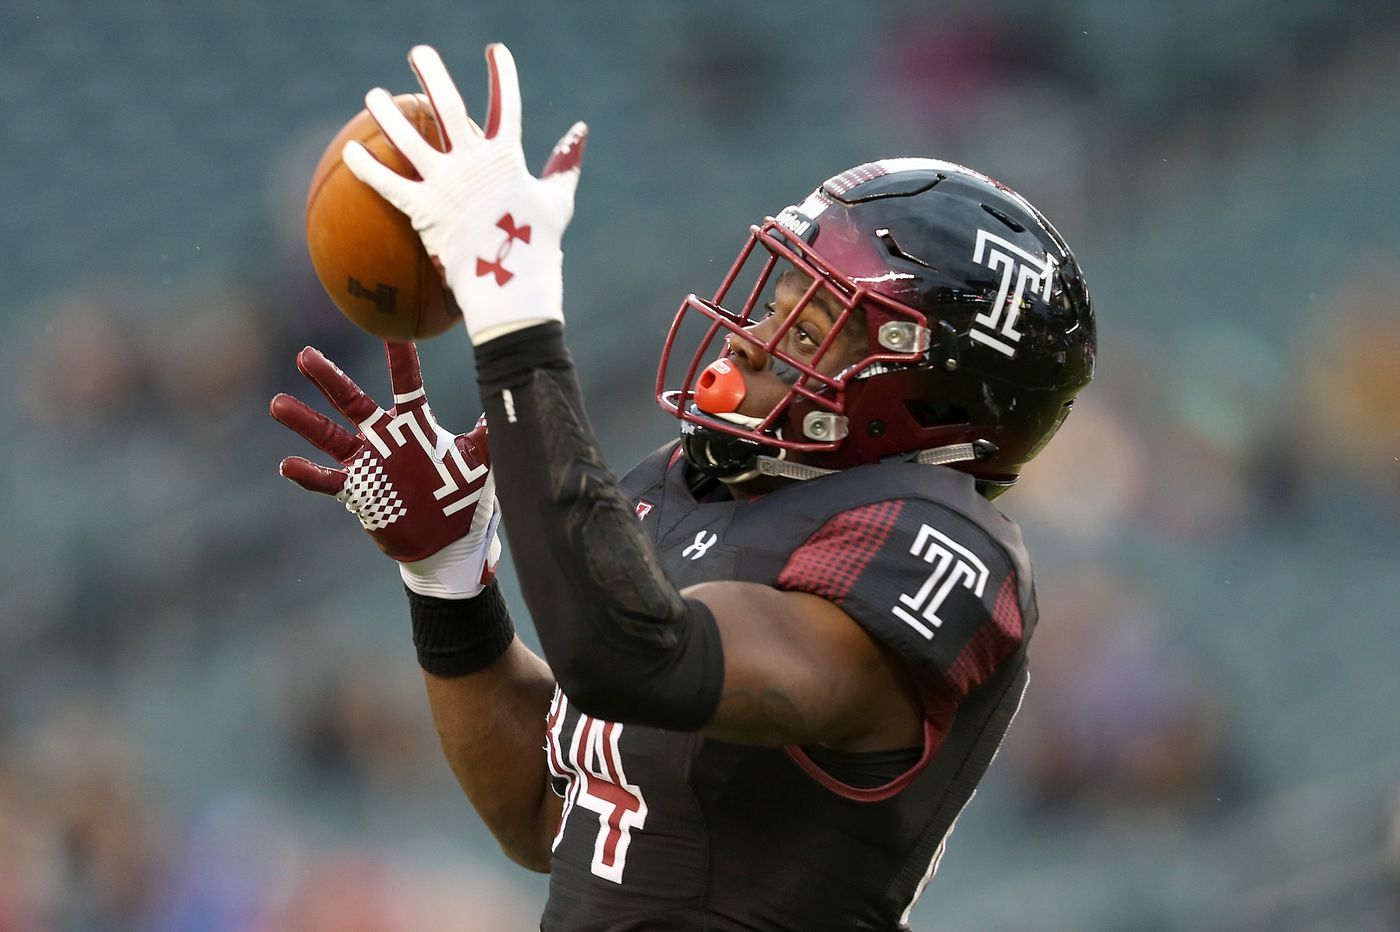 Temple tight end Kenny Yeboah's availability will be key against Maryland